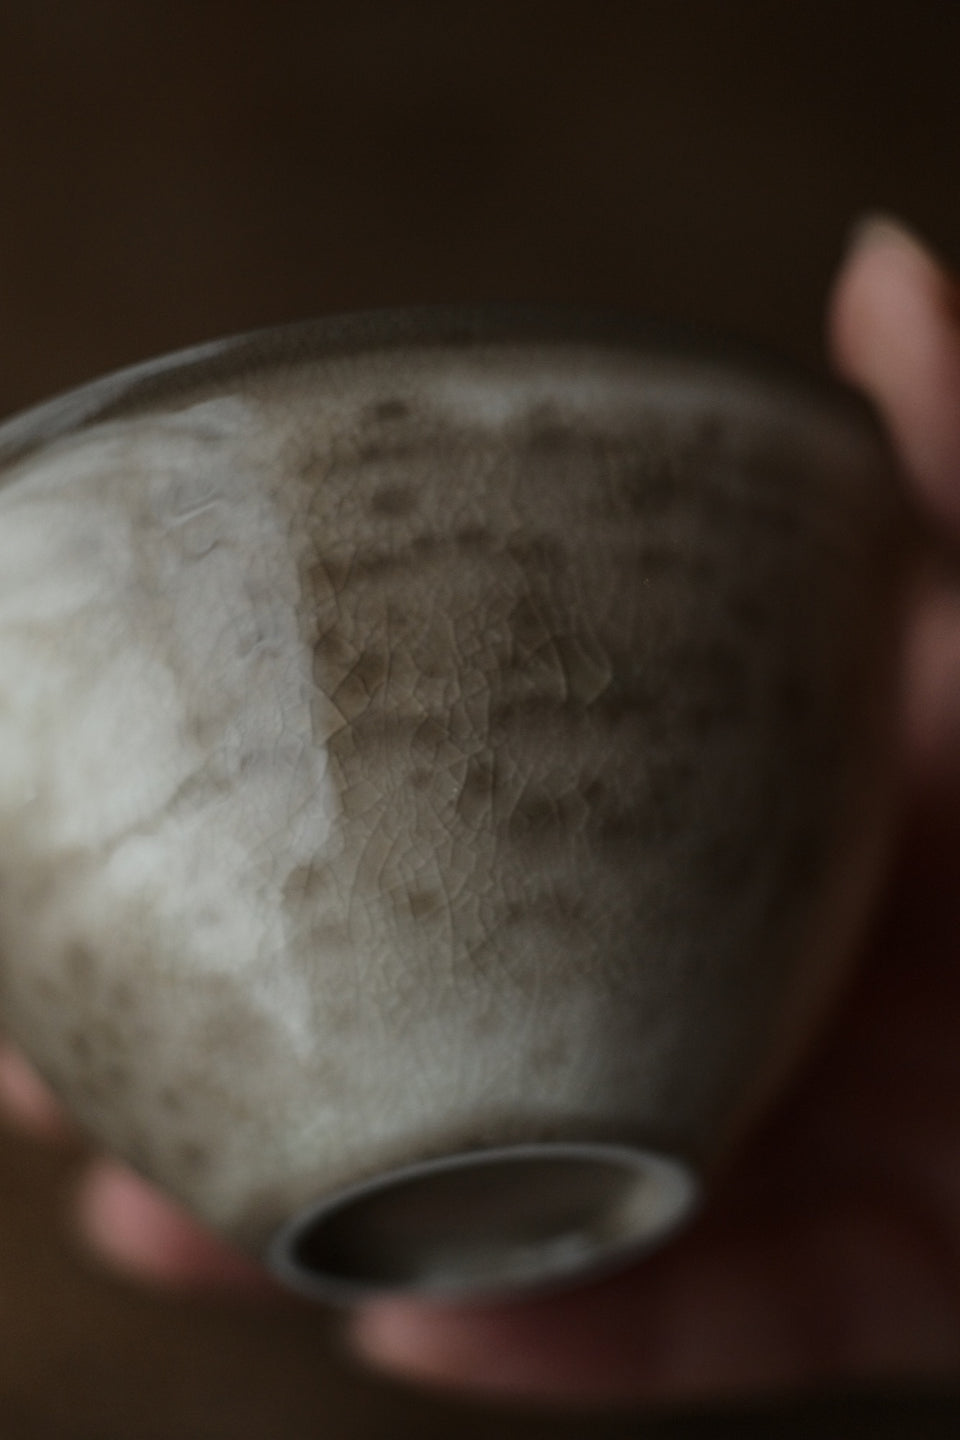 Wood-Fired Crackle Glazed Gongdaobei Pitcher